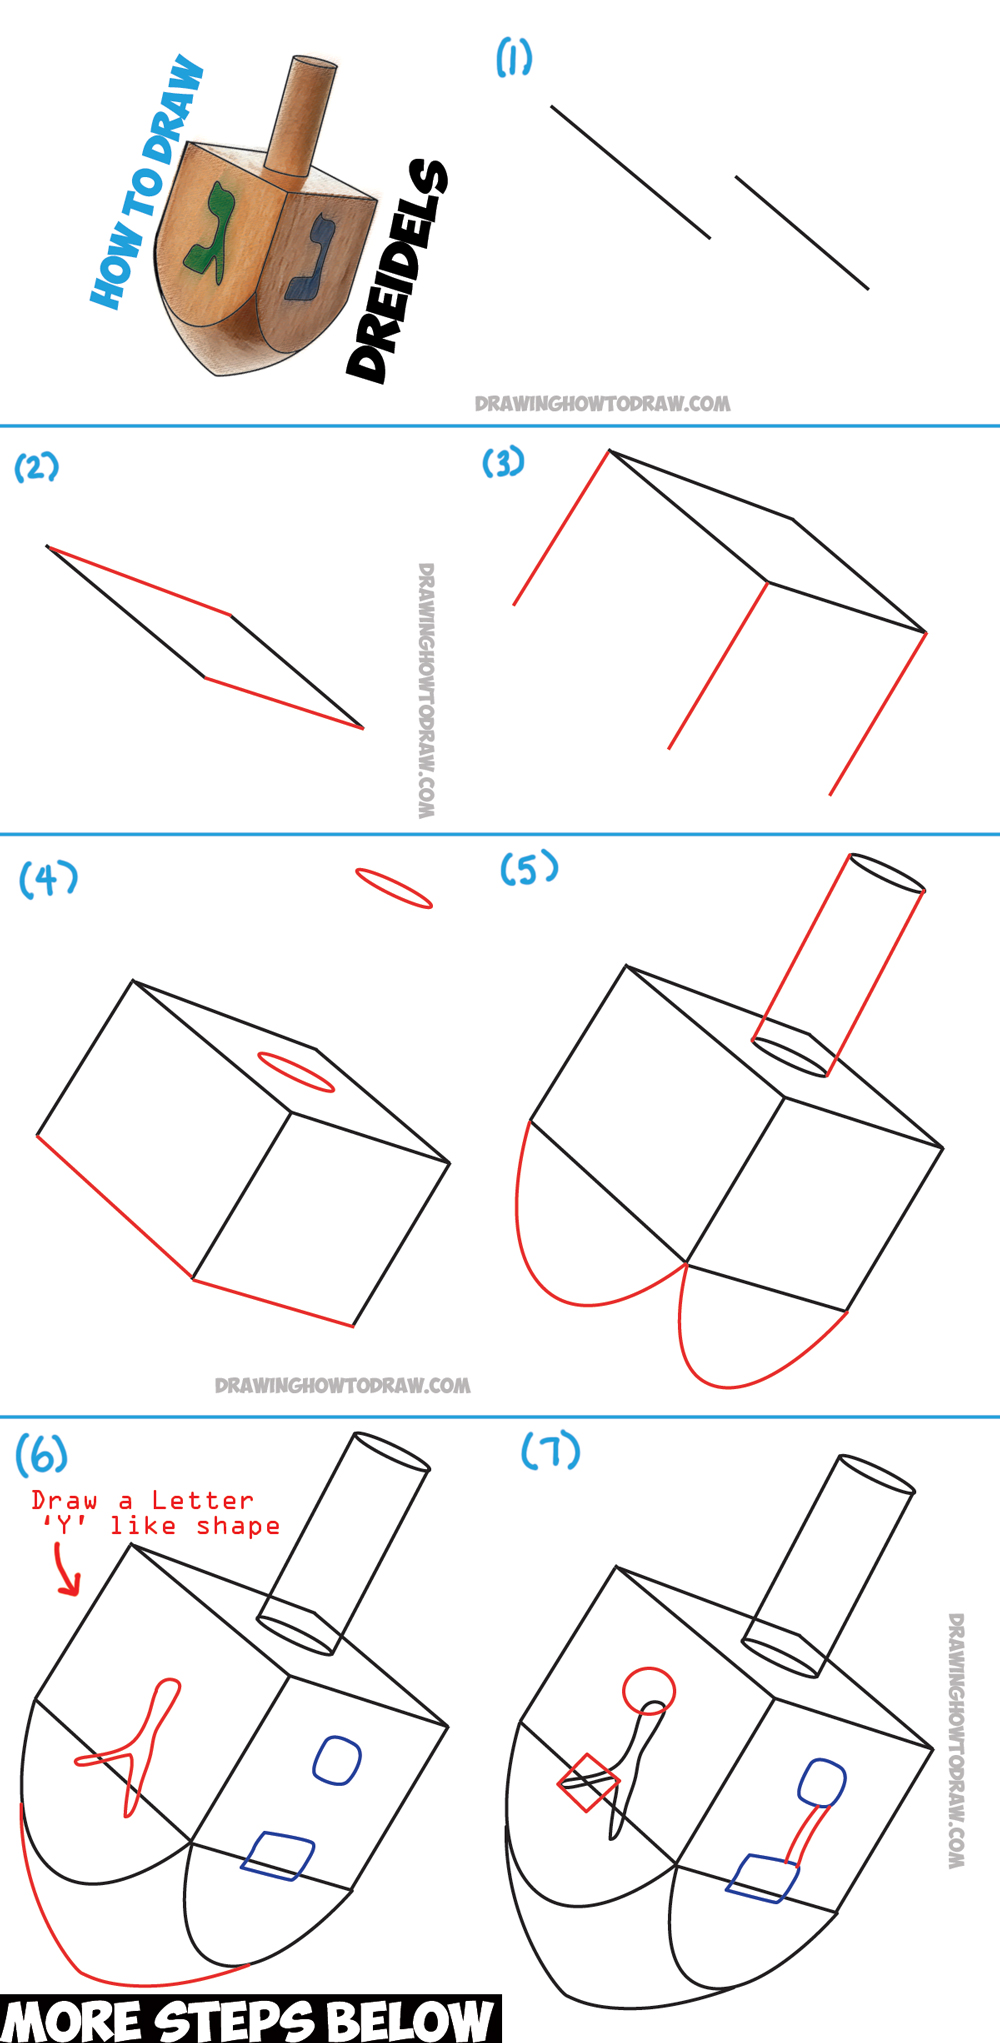 How to Draw a Dreidel for Hanukkah (Chanukah) with Simple Steps Lesson for Kids